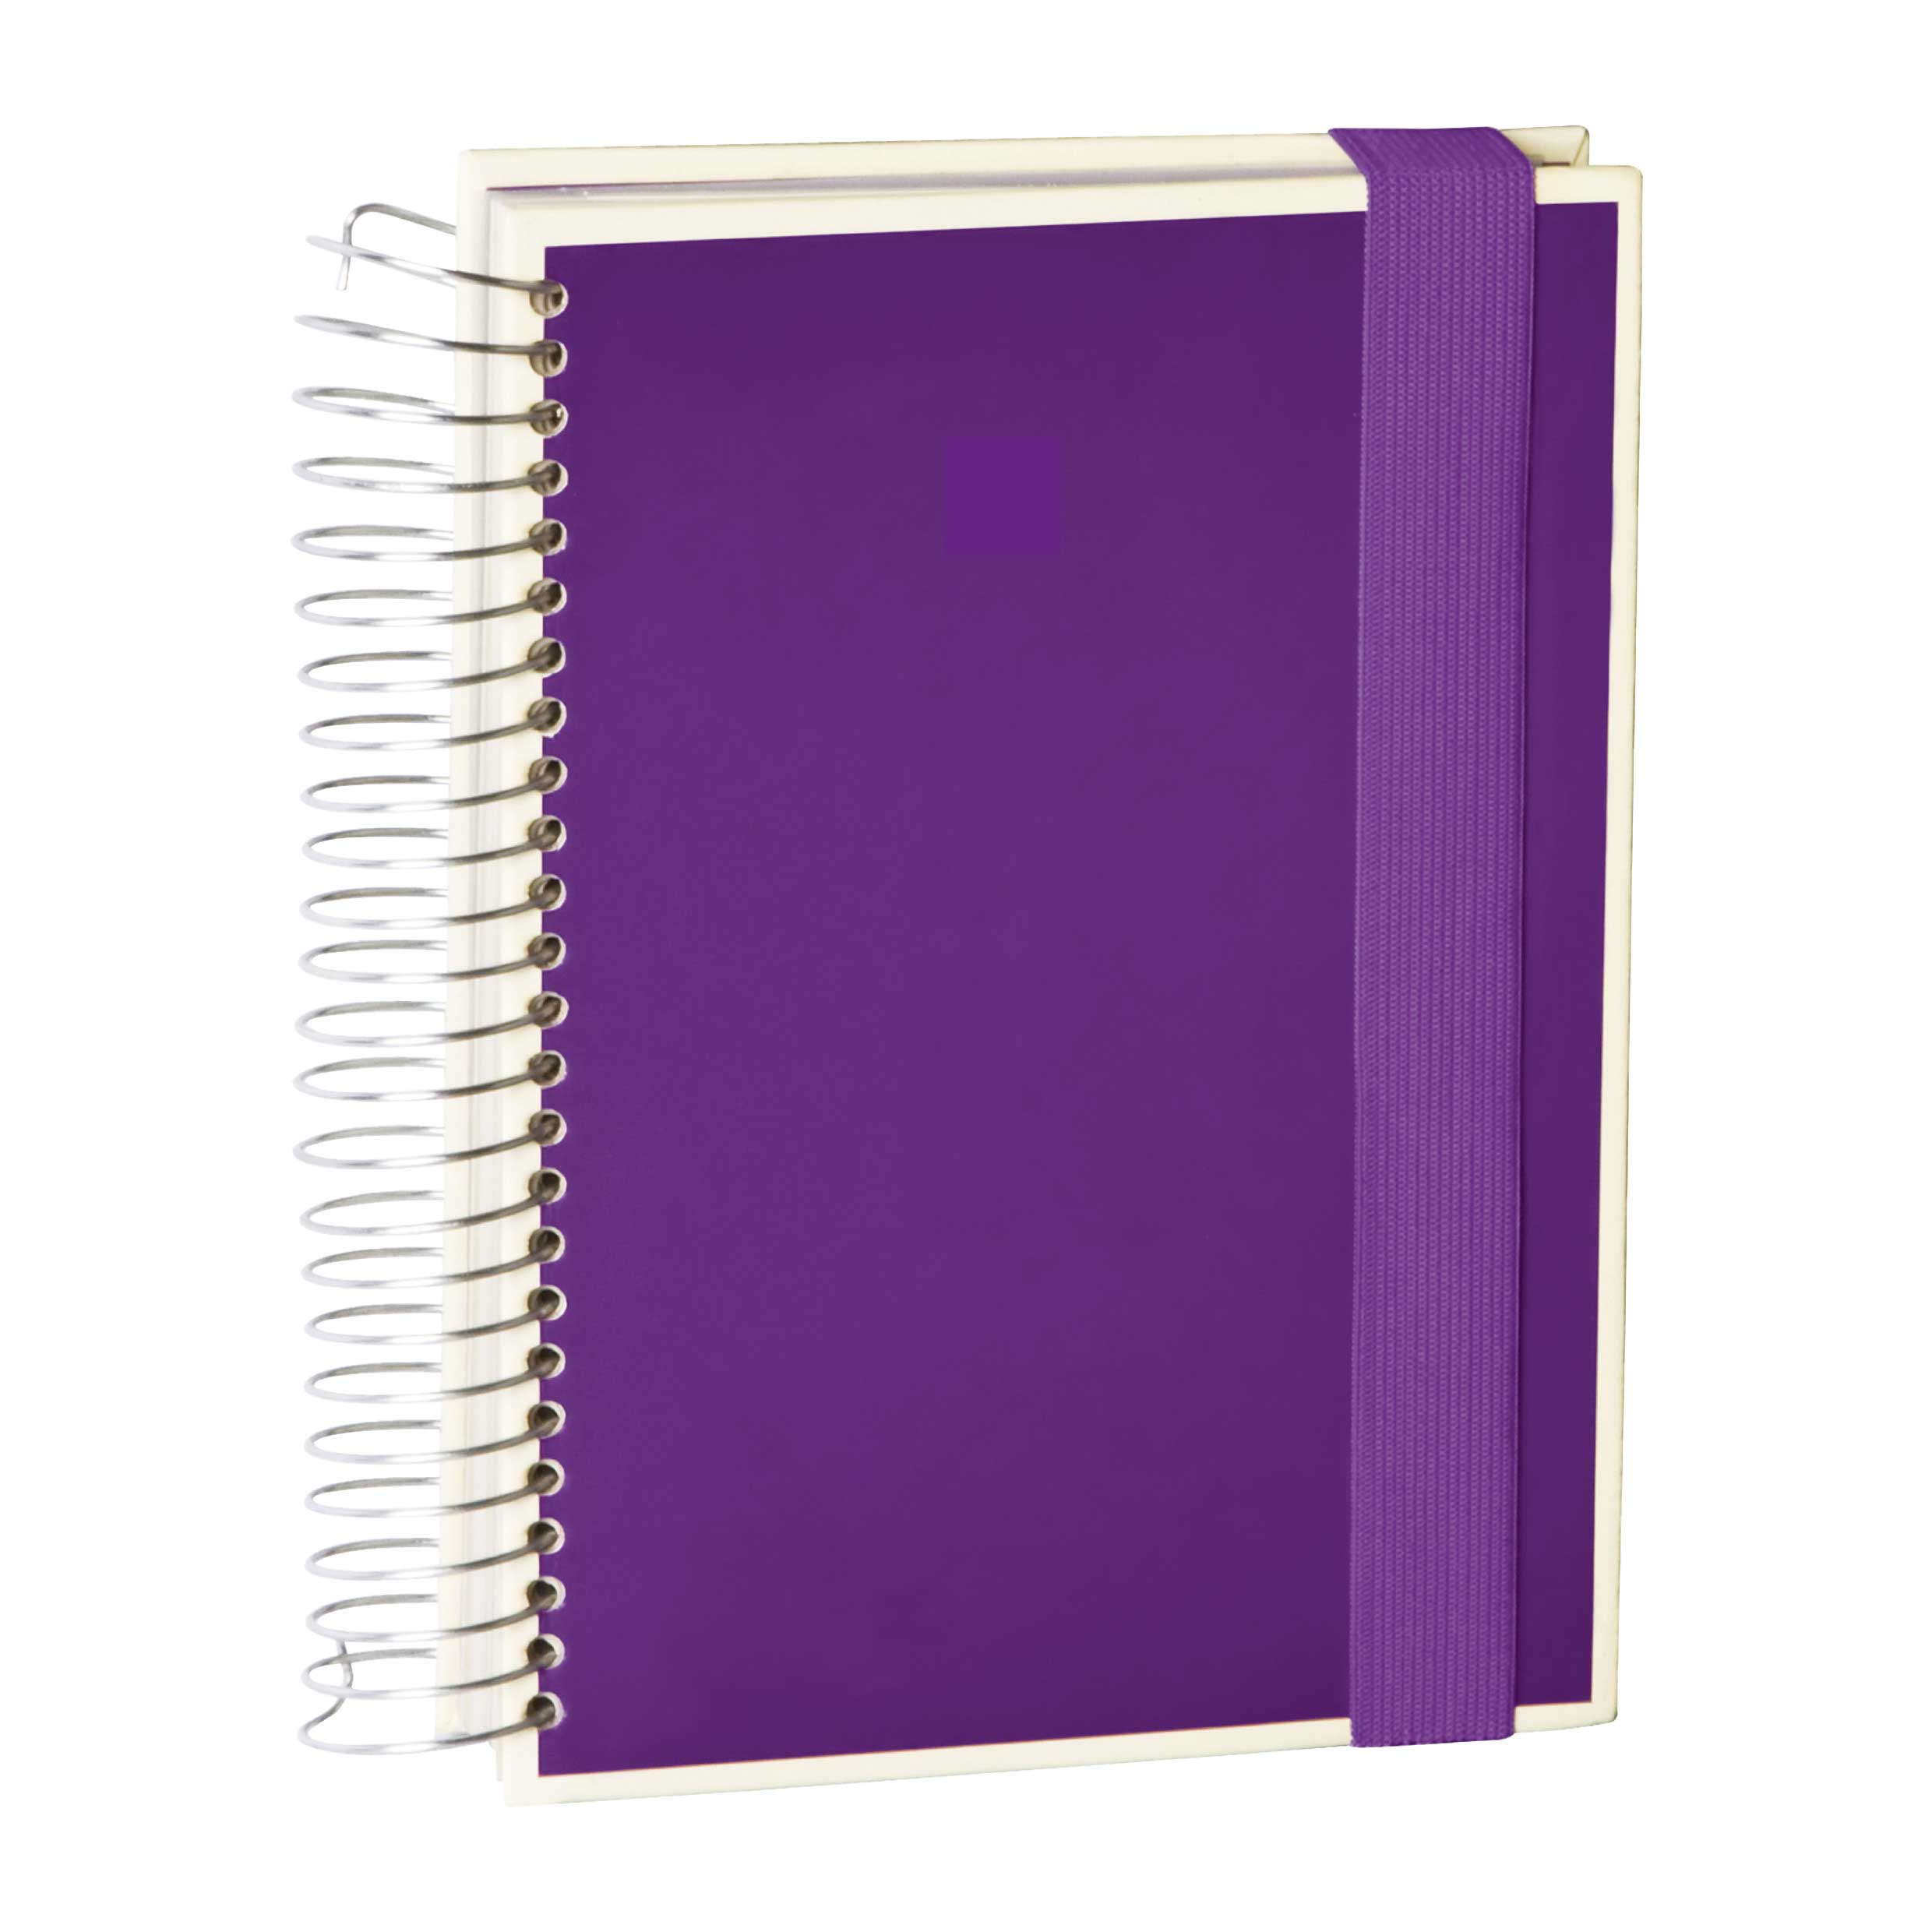 Semikolon Mucho A5 Spiral Notebook Plum